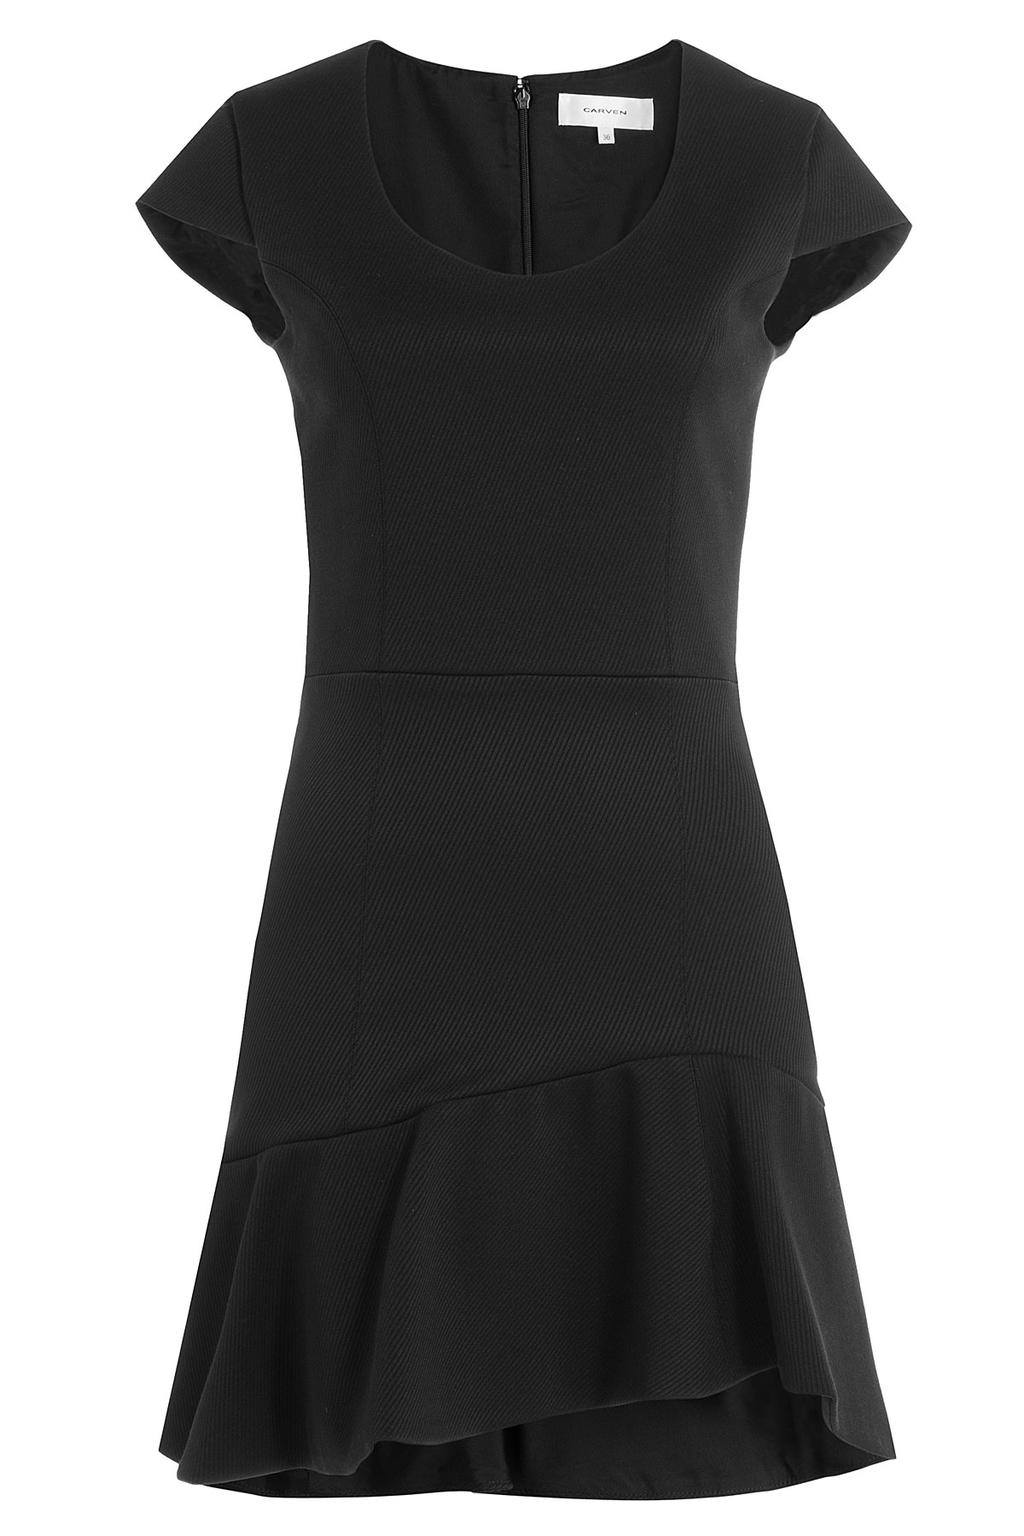 Dress With Ruffled Skirt Black - neckline: round neck; pattern: plain; predominant colour: black; occasions: evening; length: just above the knee; fit: fitted at waist & bust; style: fit & flare; fibres: polyester/polyamide - stretch; sleeve length: short sleeve; sleeve style: standard; pattern type: fabric; texture group: jersey - stretchy/drapey; season: a/w 2016